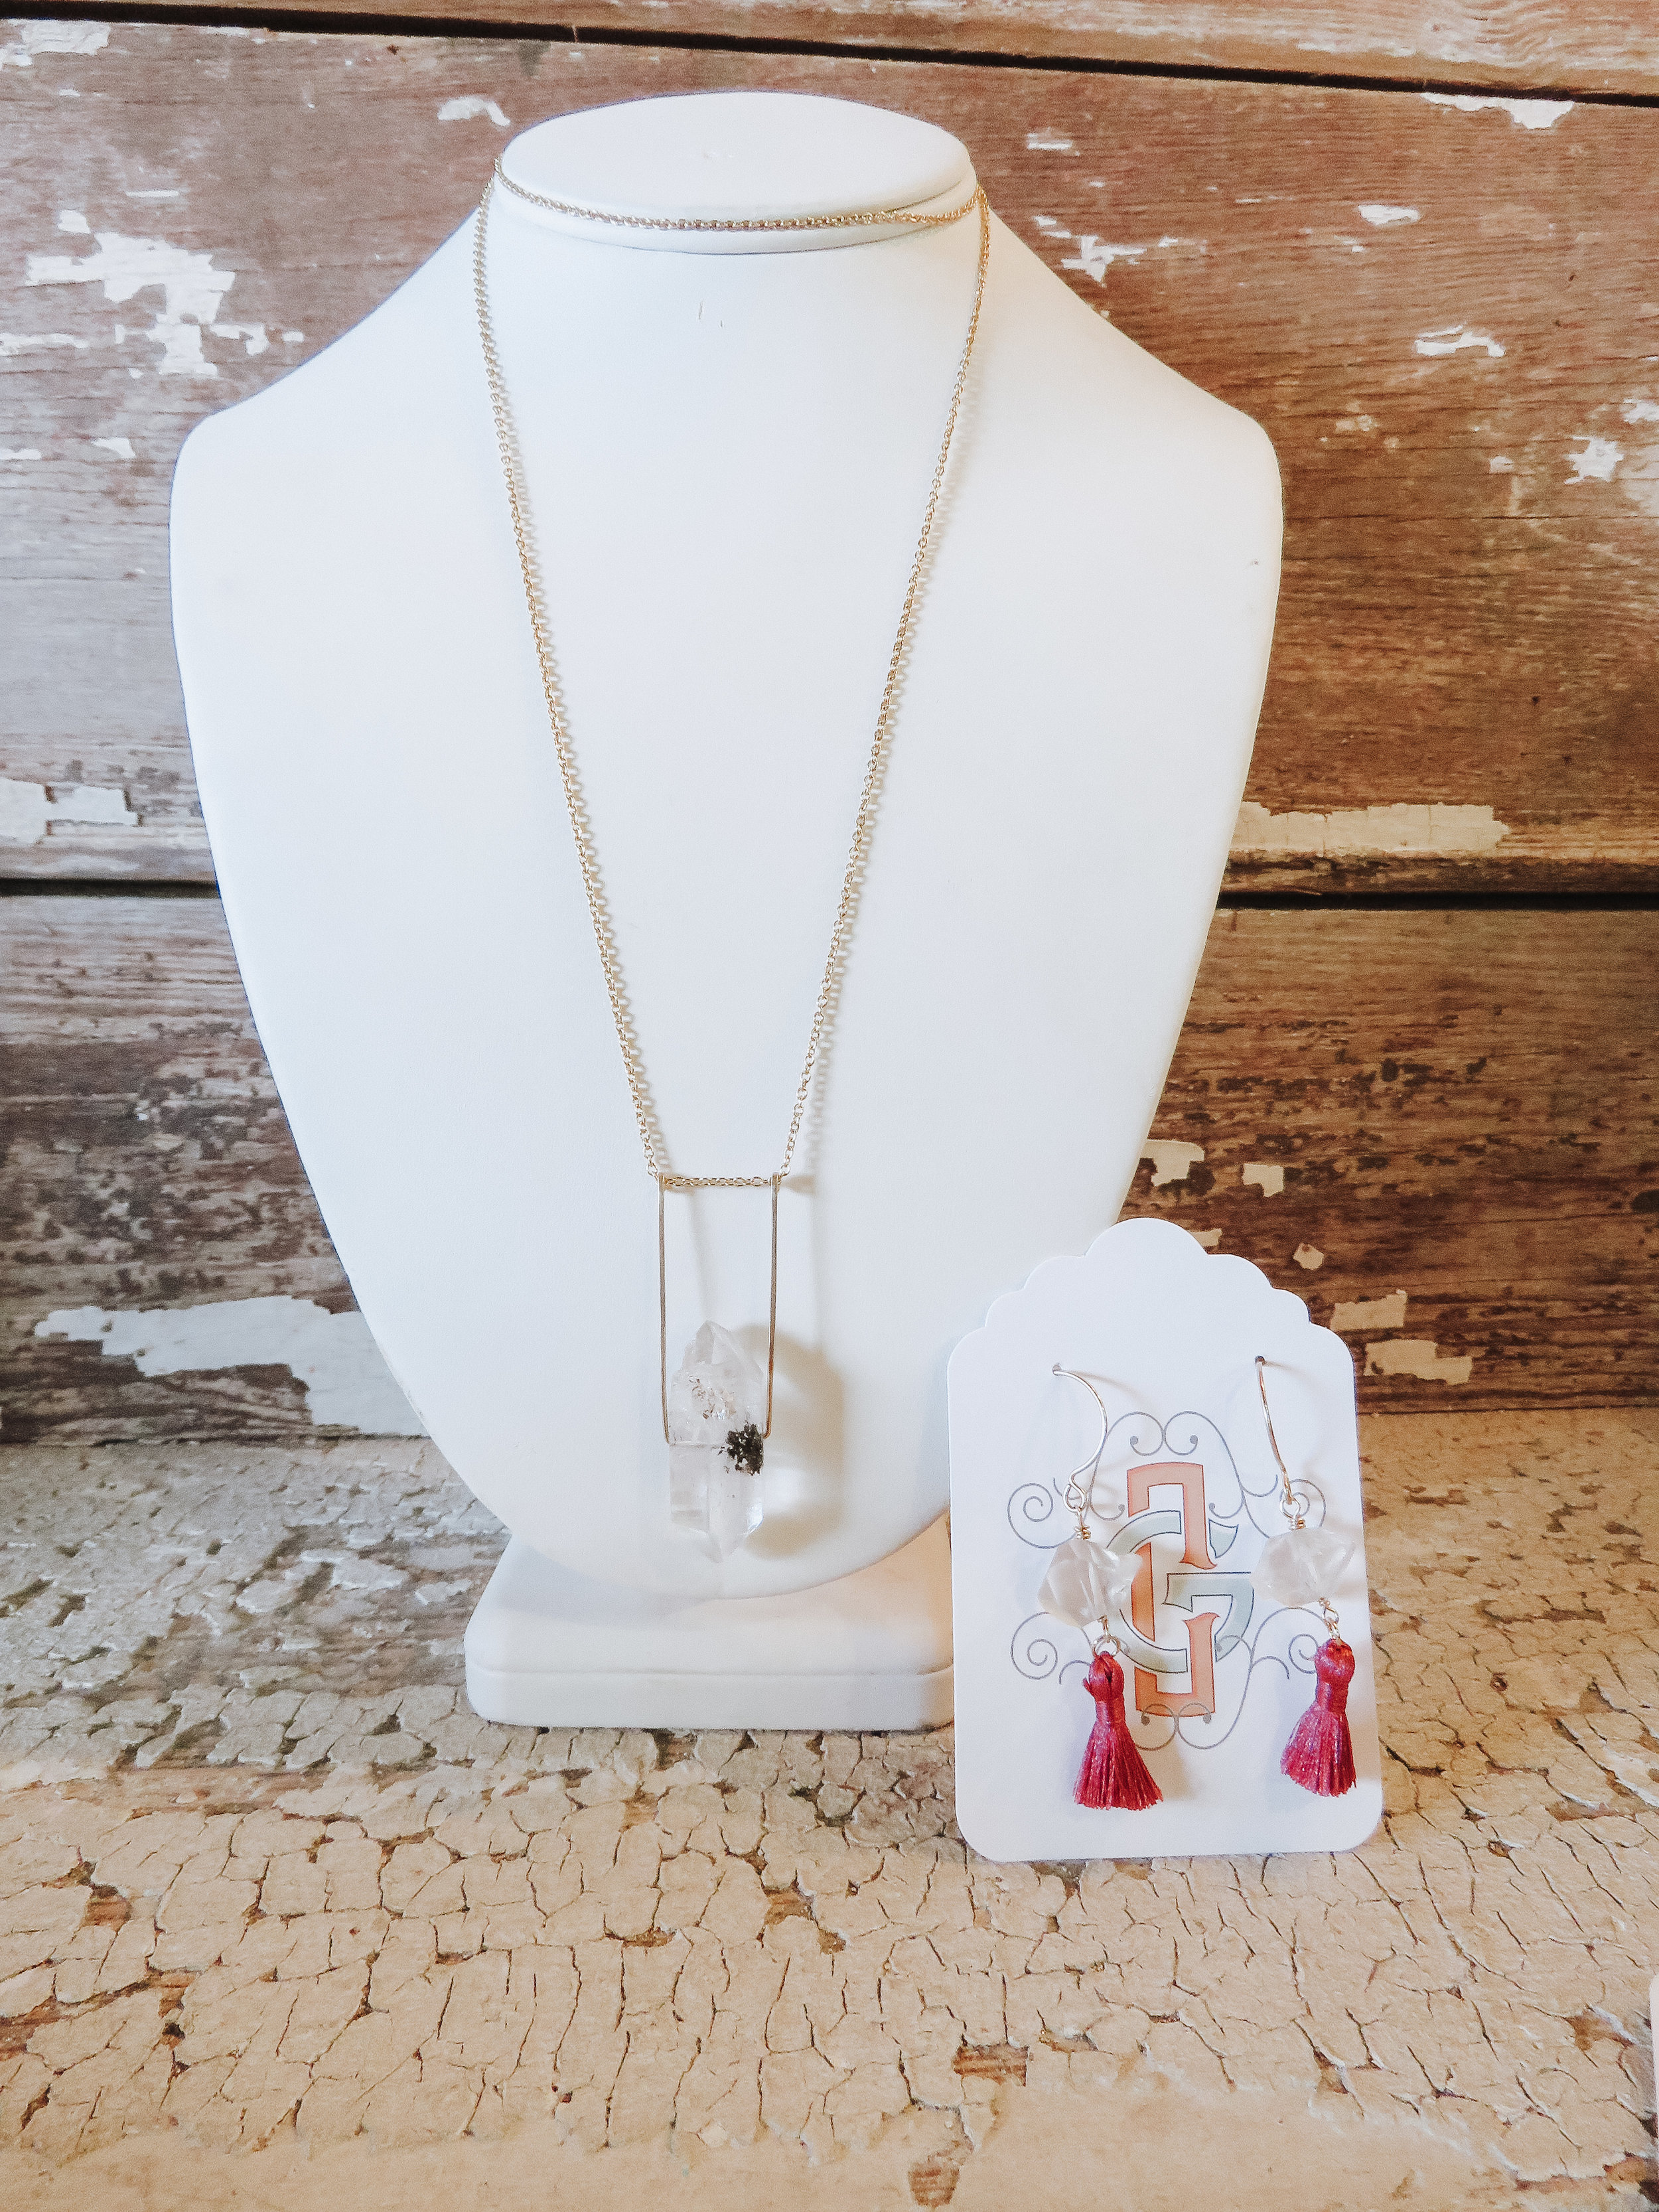 Jewelry - CharlieGirl is a gift that never disappoints! Her handmade designs and devotion to ethically sourced materials make this present that much more special. Scroll below to see some of the other pieces we're currently carrying!